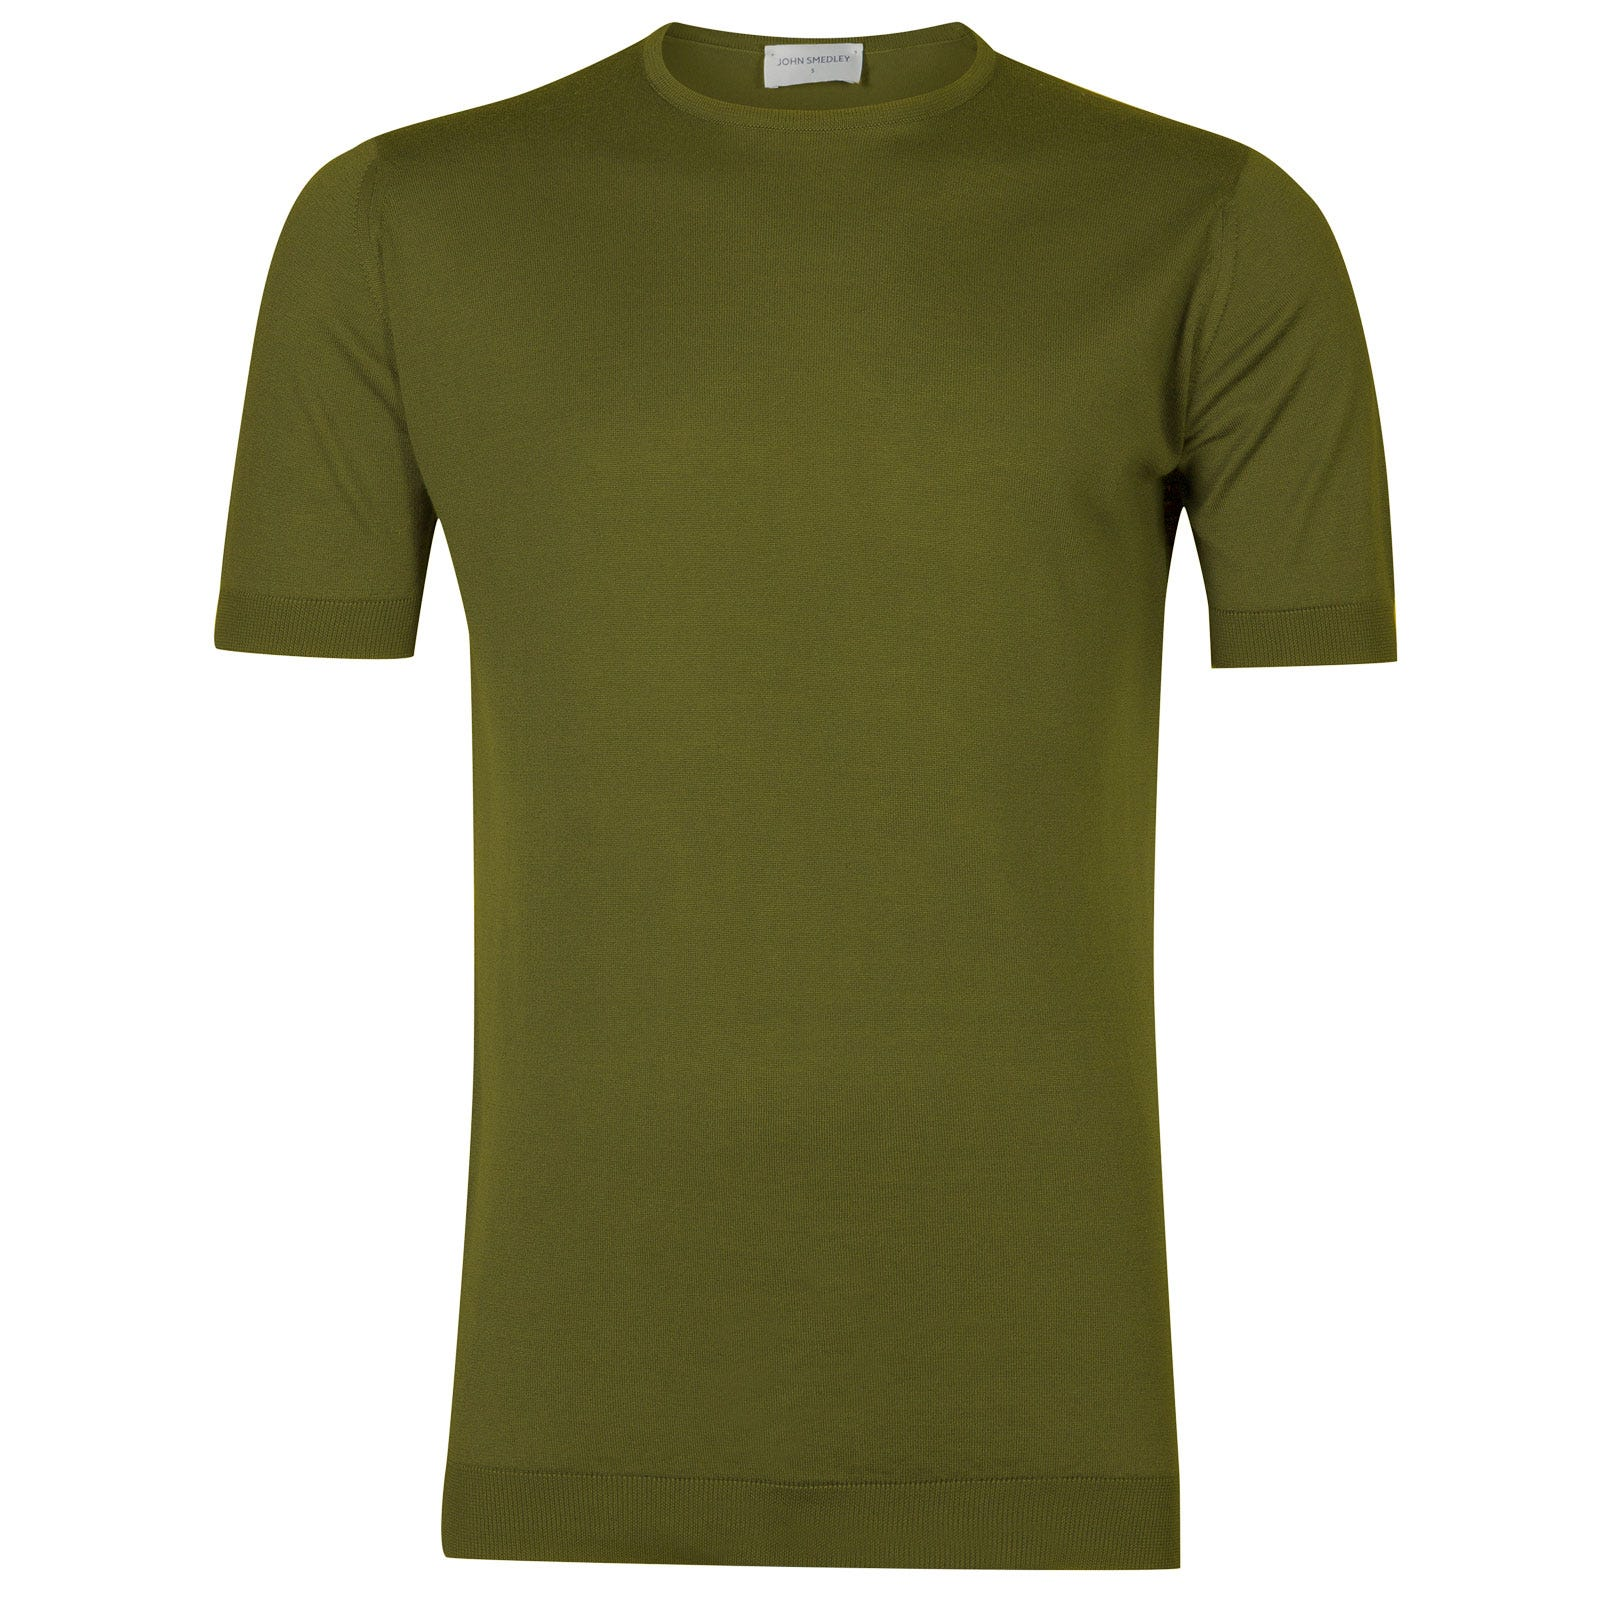 John Smedley belden Sea Island Cotton T-shirt in Lumsdale Green-M